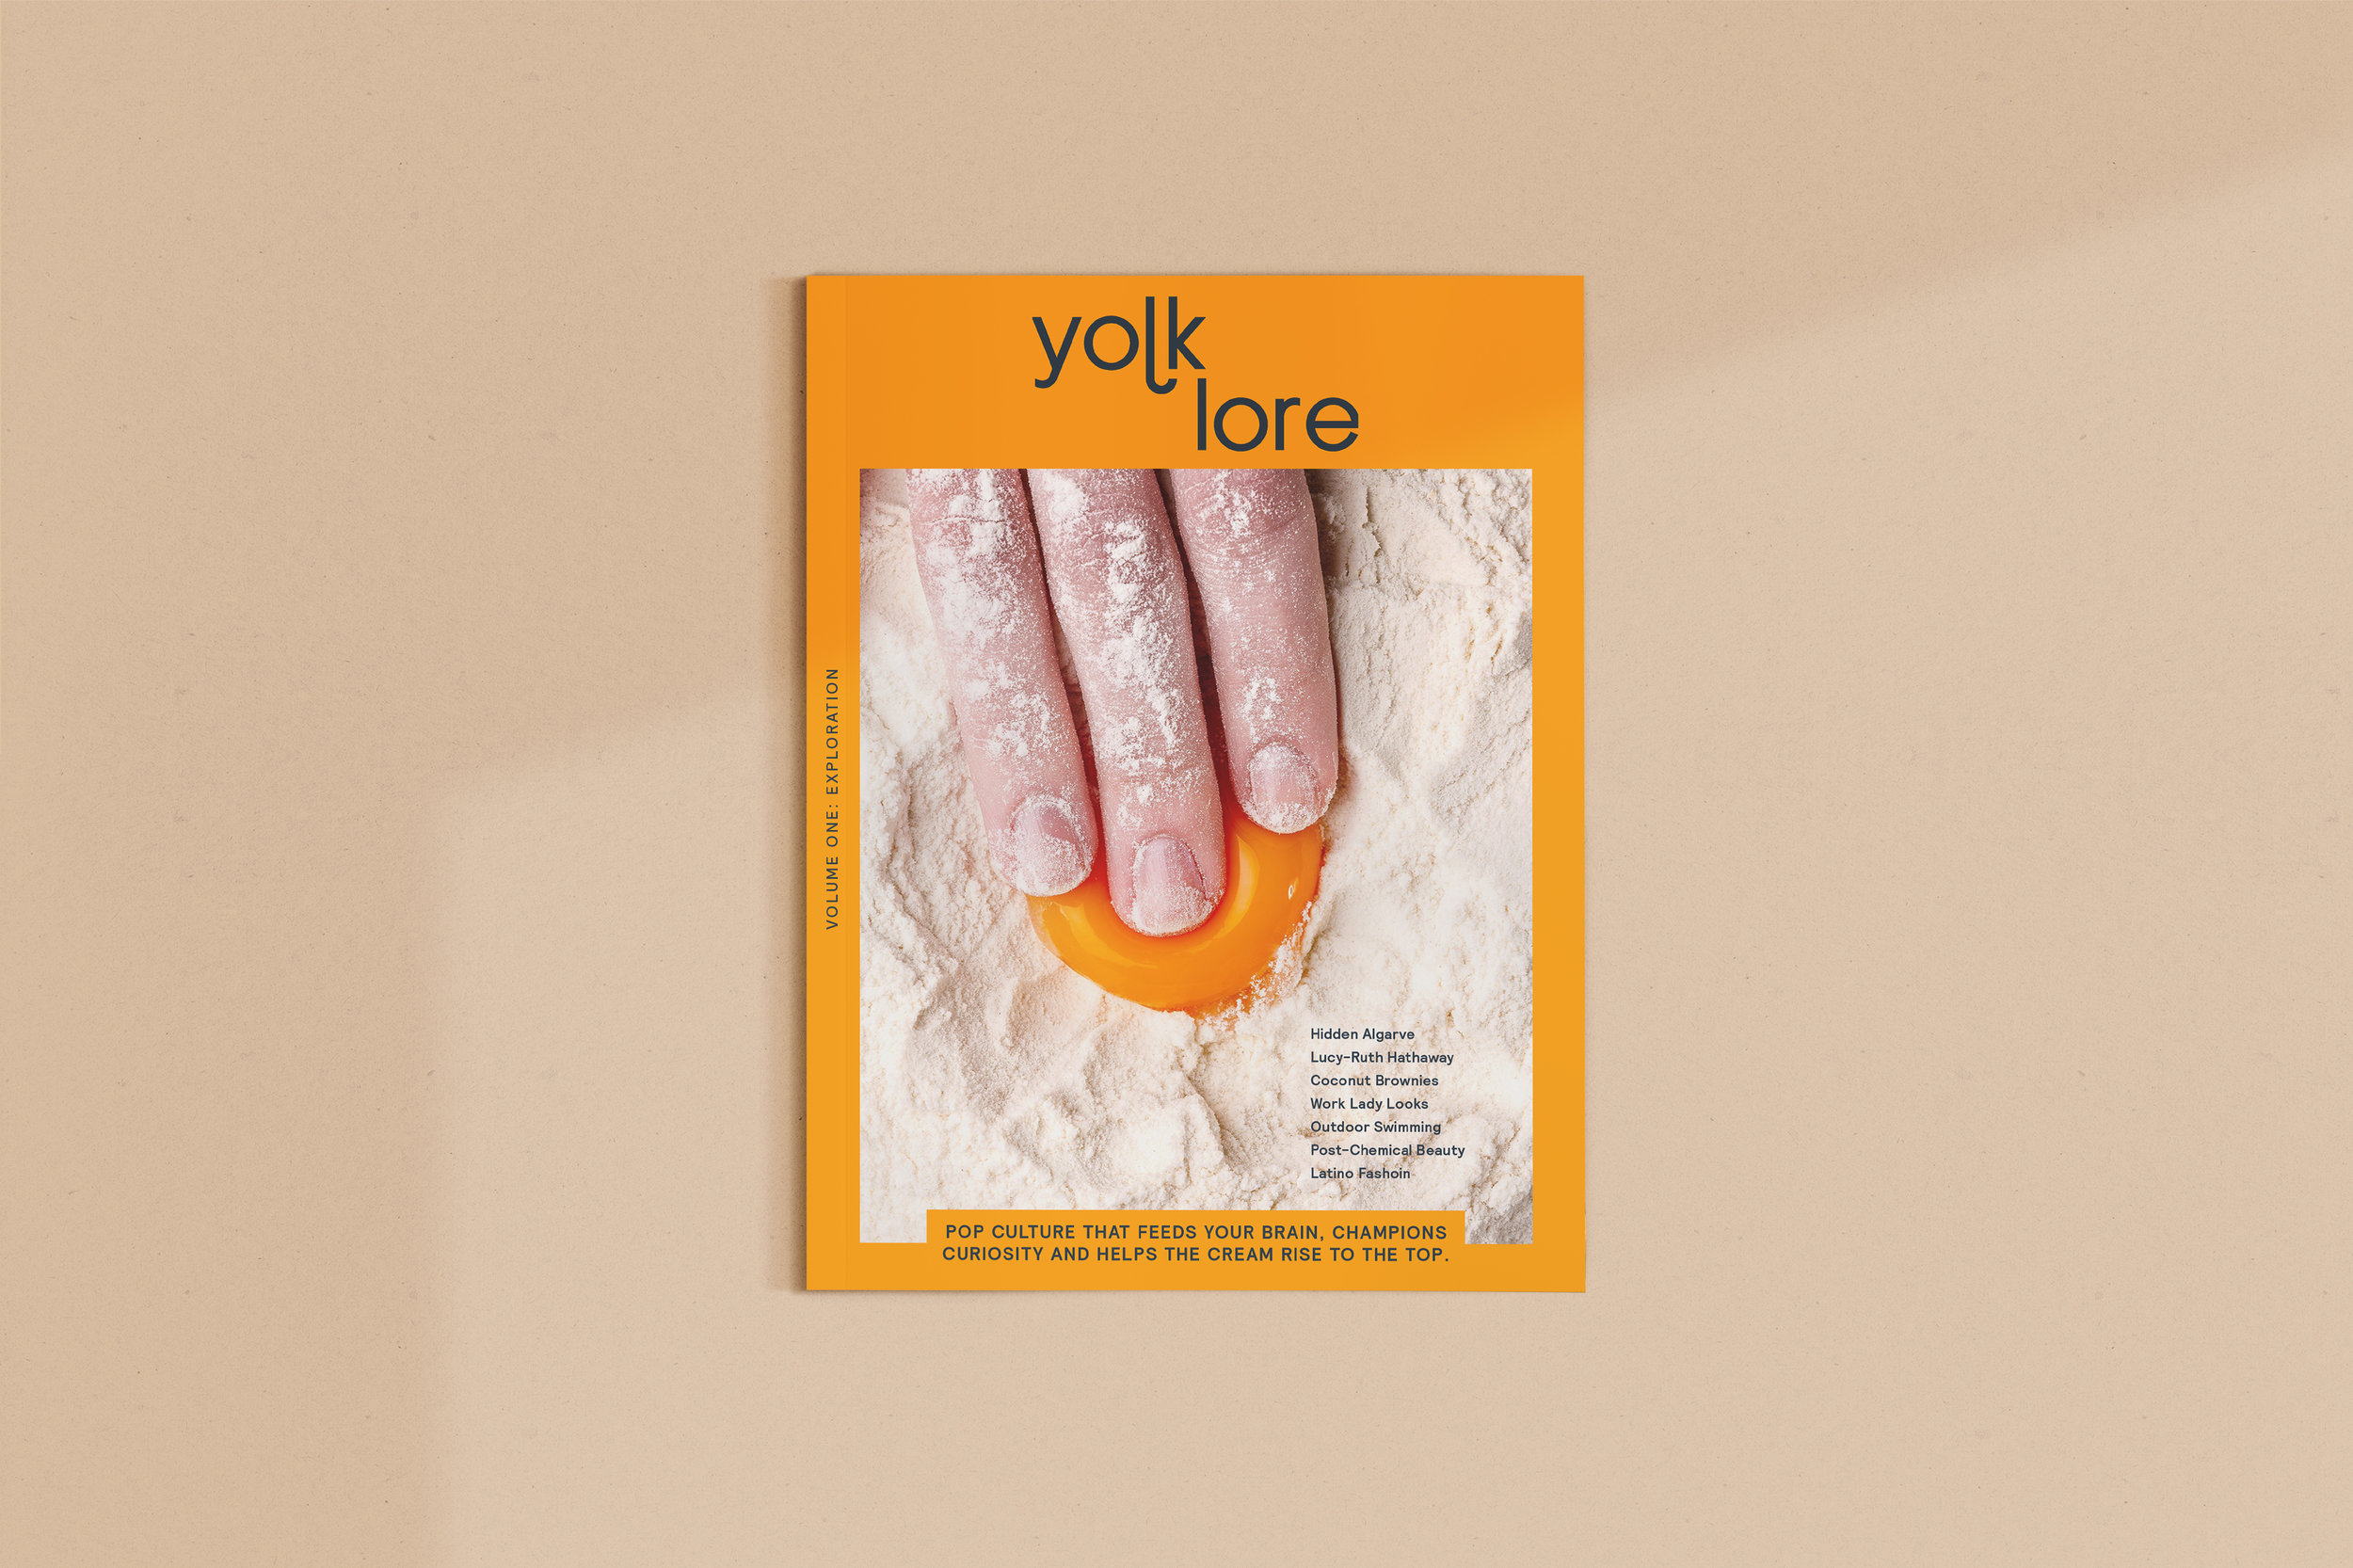 Yolklore Magazine - We are over the moon to be releasing our first print issue of Yolklore magazine. Designed to show you stuff you don't normally come across, by brands and people you've not yet heard of. Our mission is to help the cream rise to the top, championing brilliance, curiosity and eye-opening physical experiences, not keywords. Pre-order issue 1 before 15th May, £8 here. For the online magazine, head here.